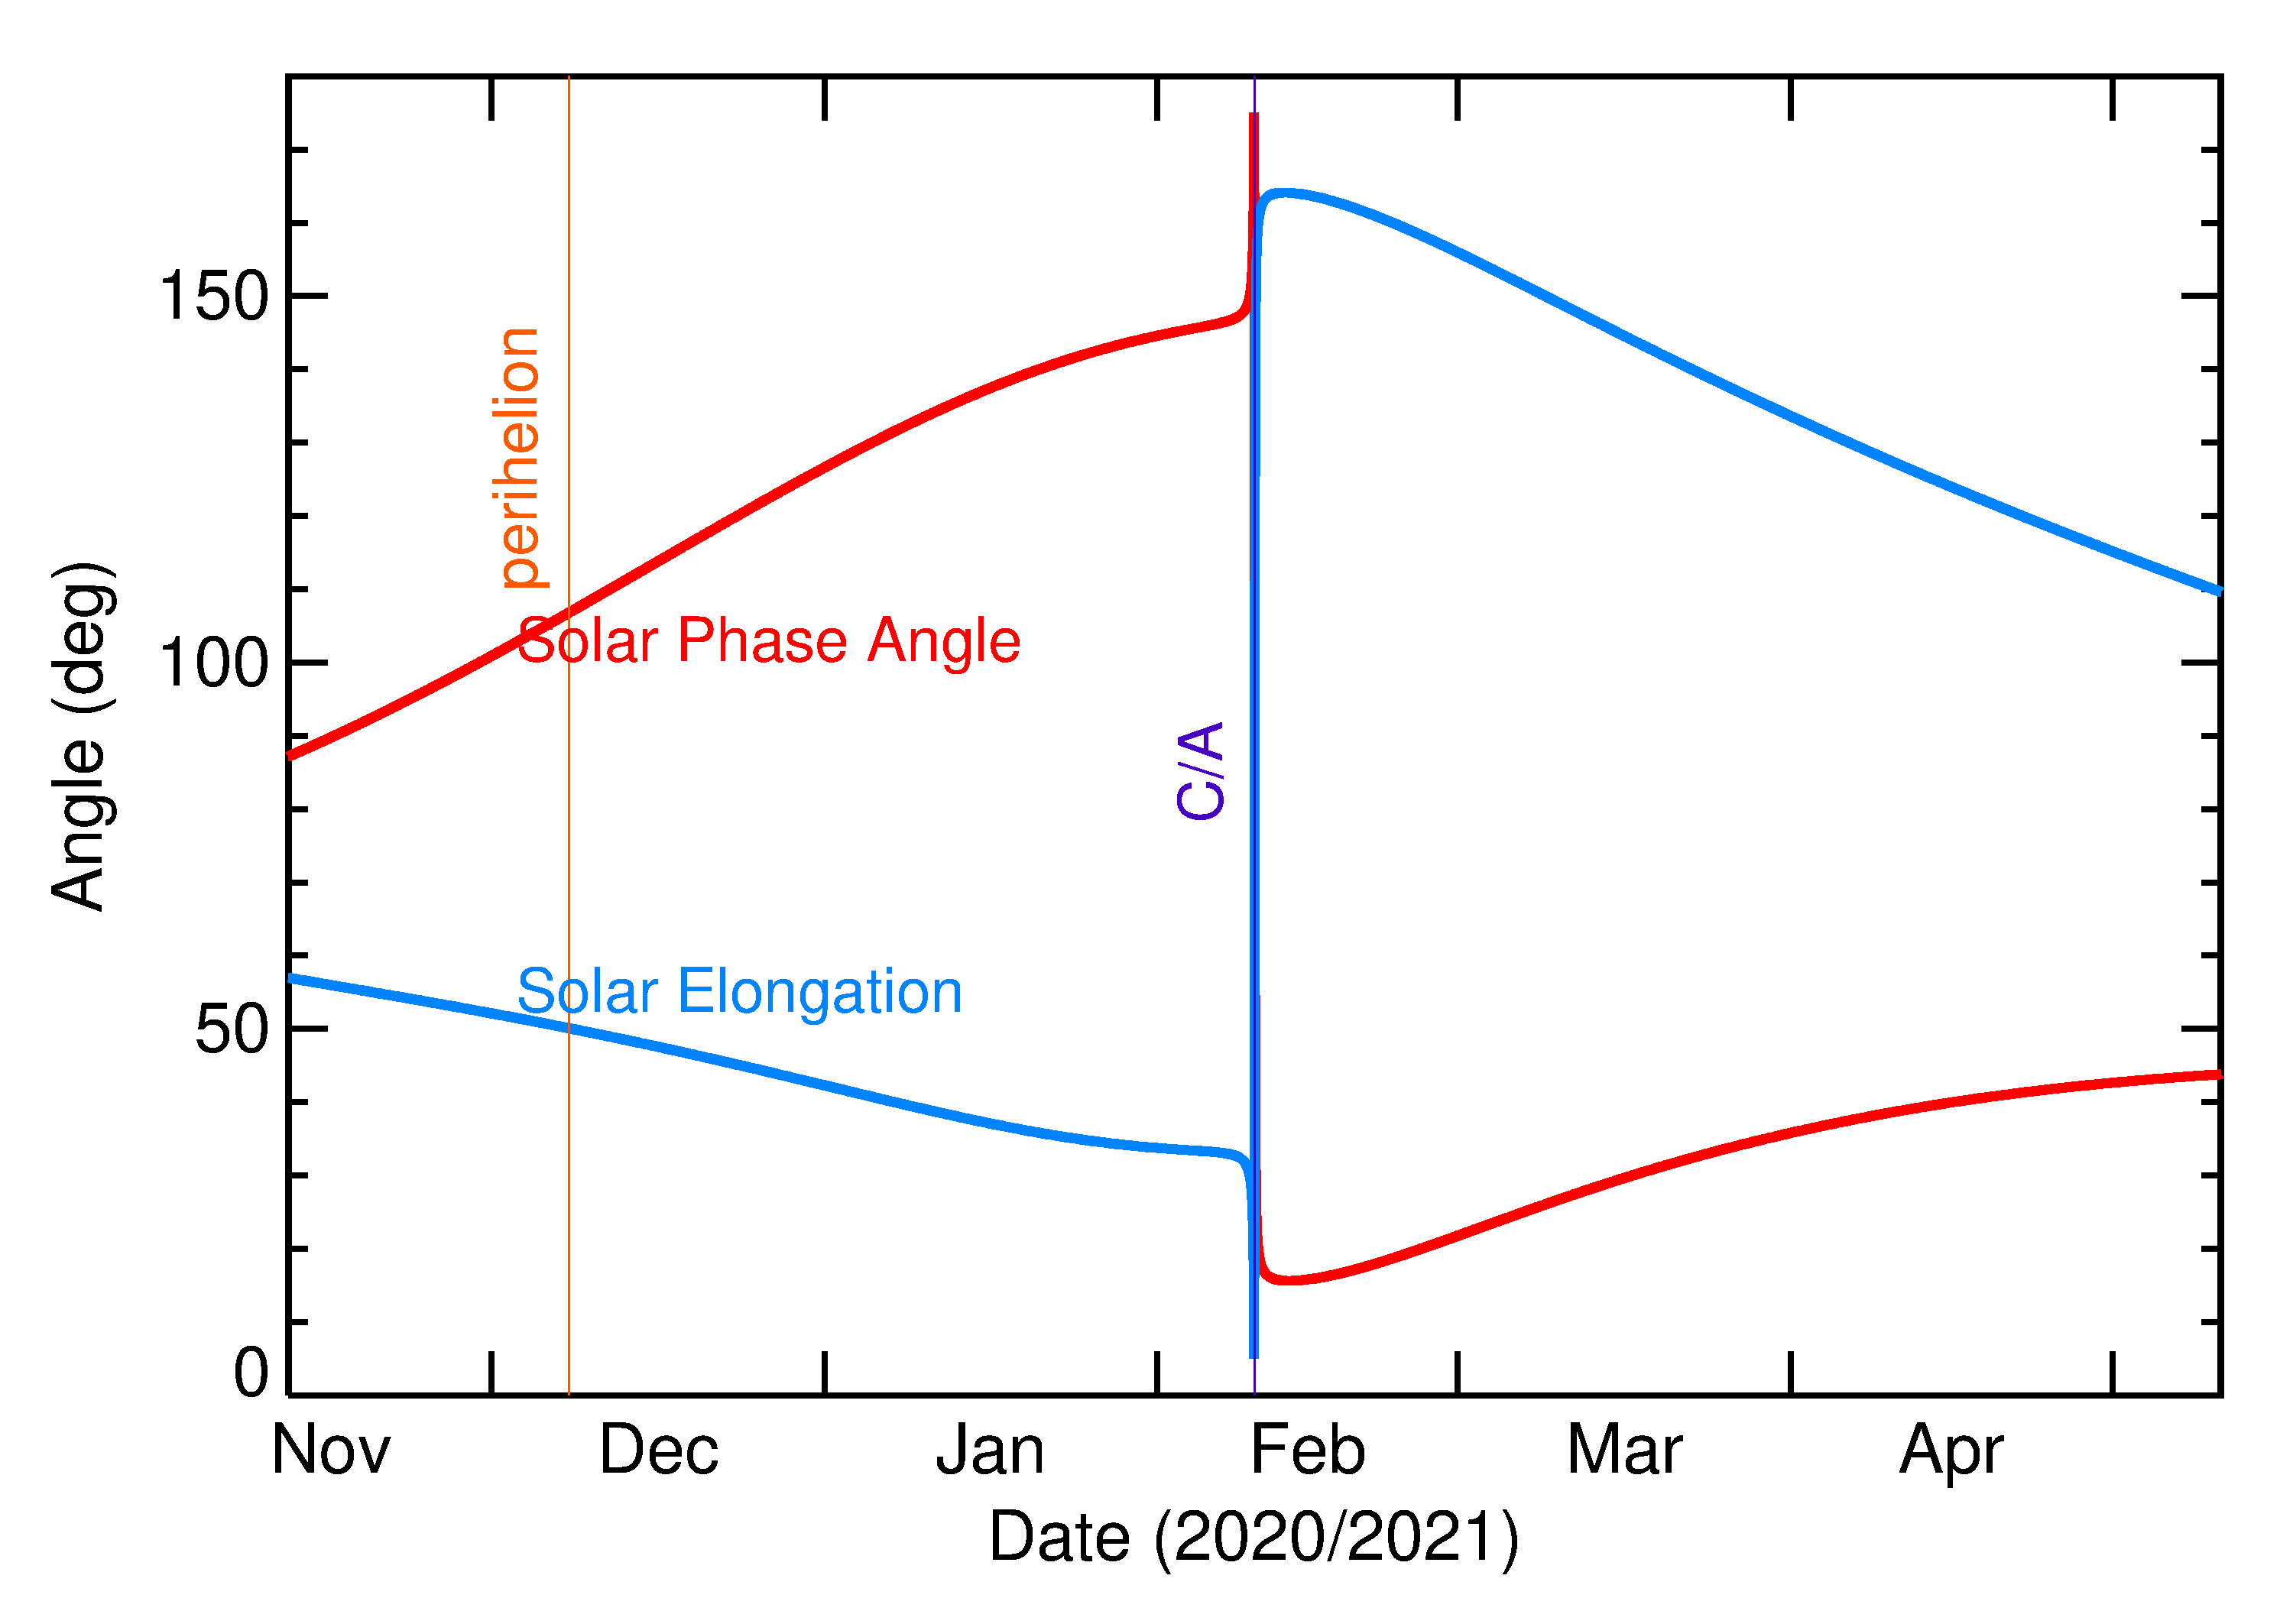 Solar Elongation and Solar Phase Angle of 2021 CZ3 in the months around closest approach